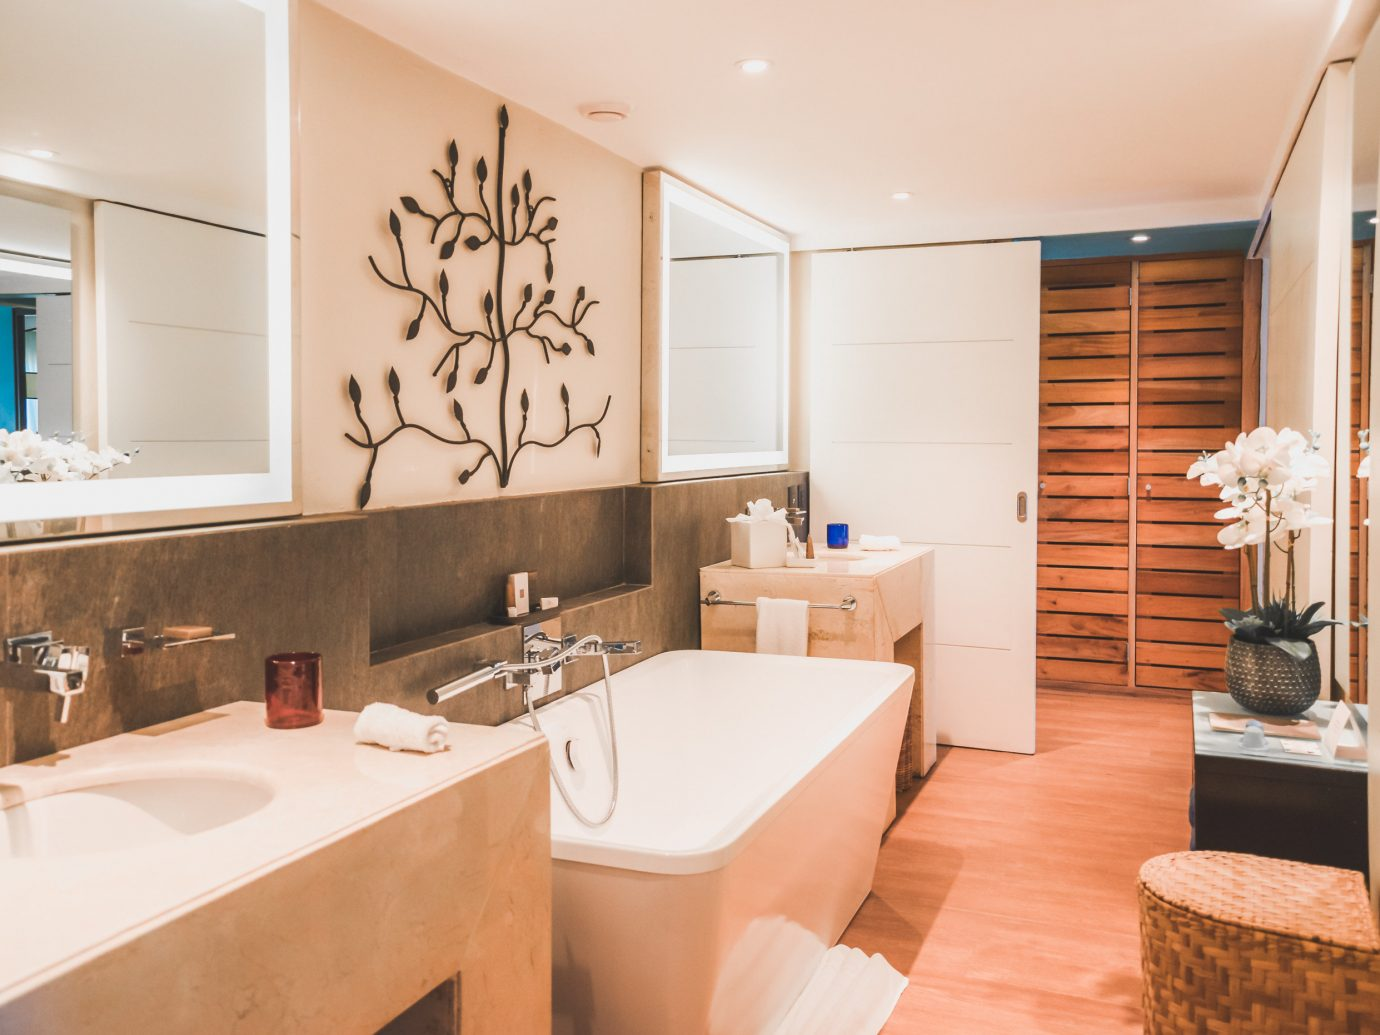 All-Inclusive Resorts caribbean Family Travel Hotels indoor wall bathroom floor room window interior design ceiling sink Suite home real estate estate interior designer tub Bath bathtub